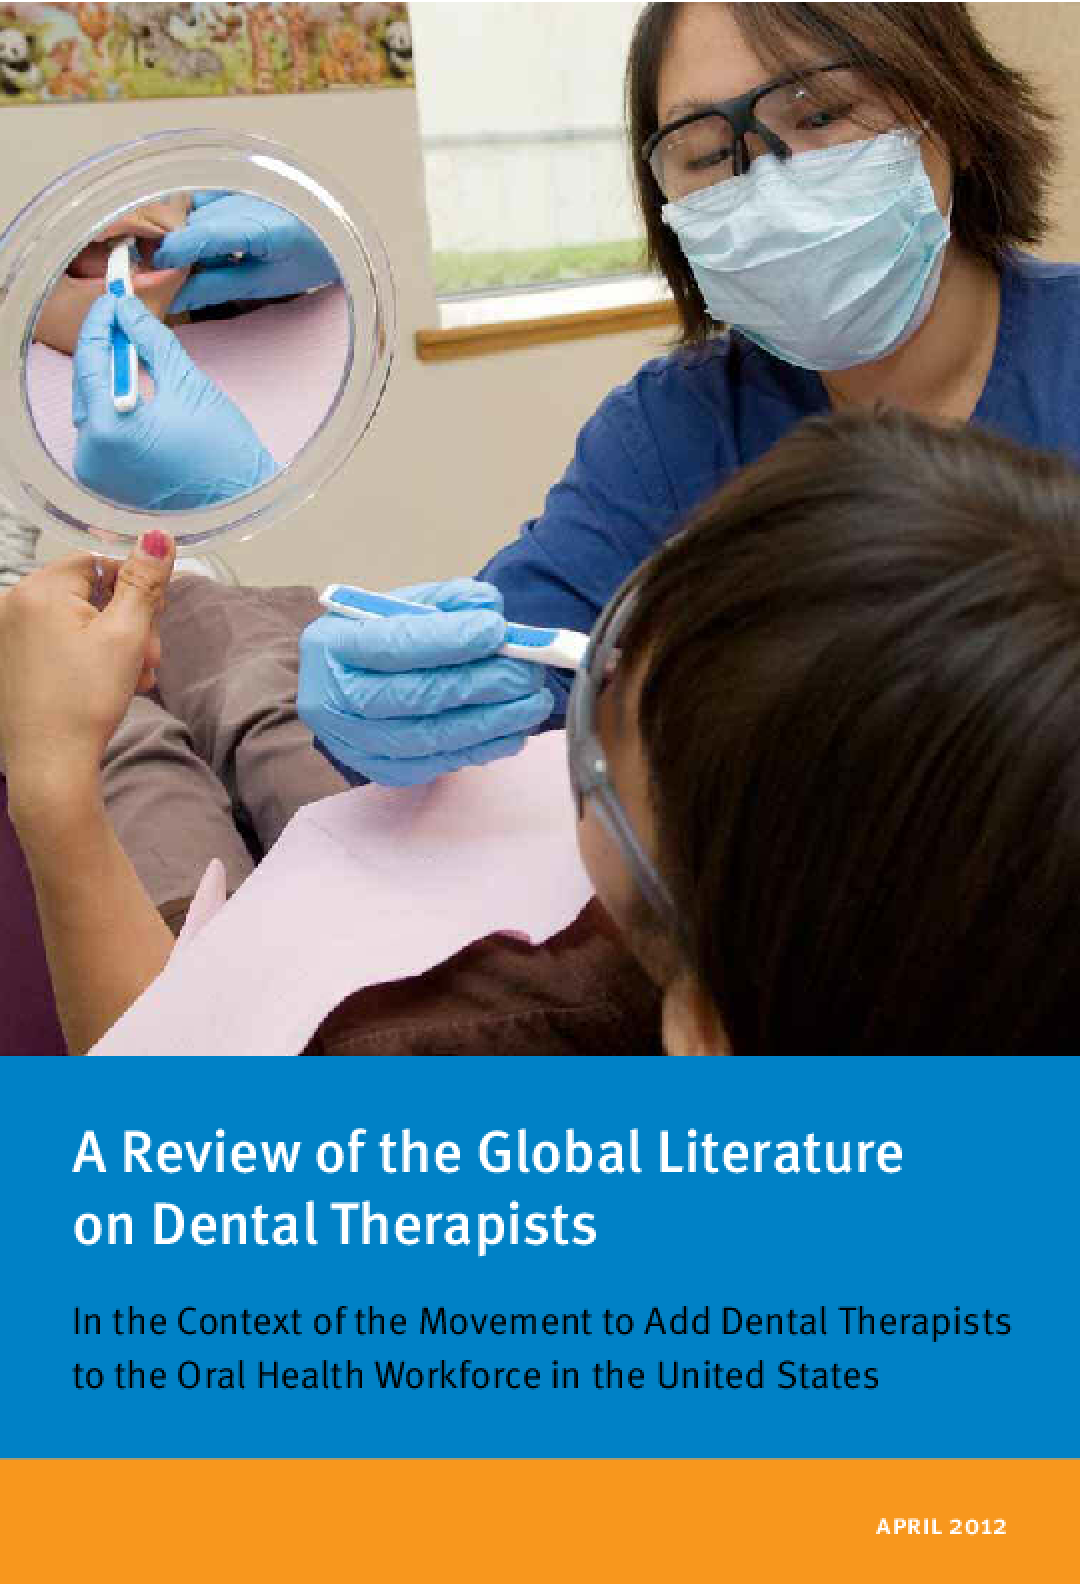 A Review of the Global Literature on Dental Therapists: In the Context of the Movement to Add Dental Therapists to the Oral Health Workforce in the United States  (Executive Summary)